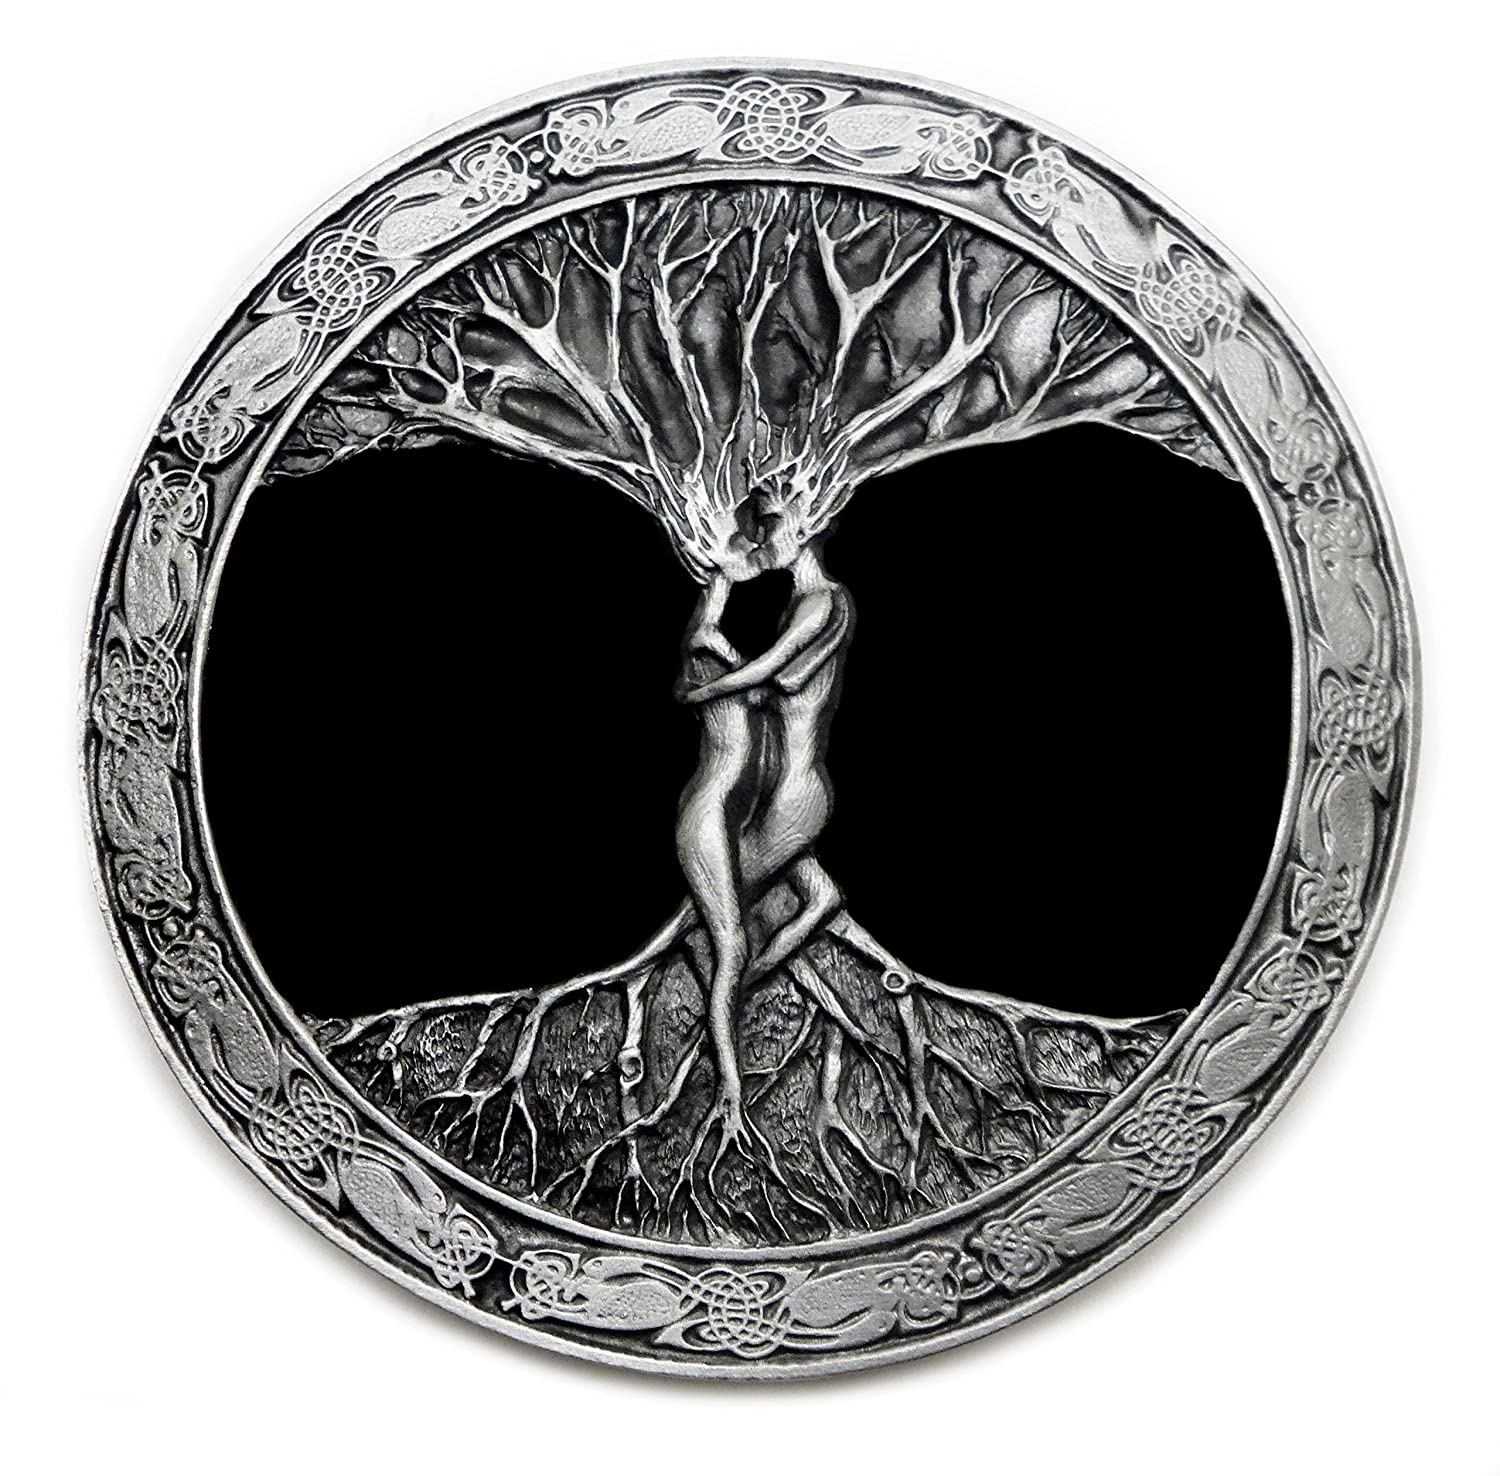 The Tree Of Life Belt Buckle Circular Detailed Artistic Design Authentic Bergamot Branded Product BER D 262 E